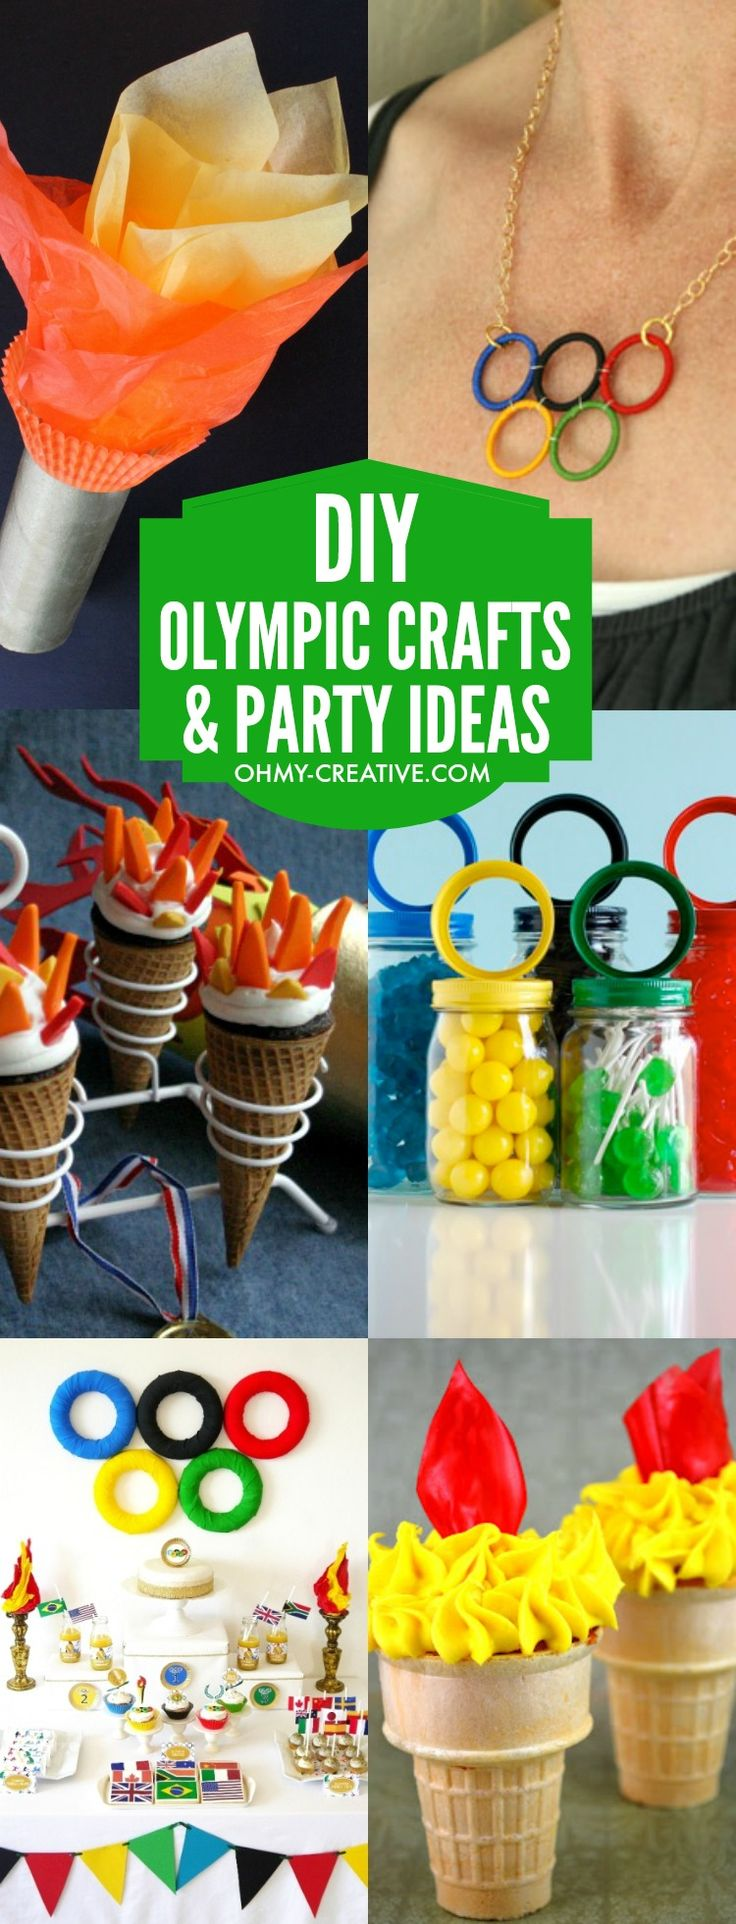 94 best Summer and Winter Olympics images on Pinterest | Olympic ...